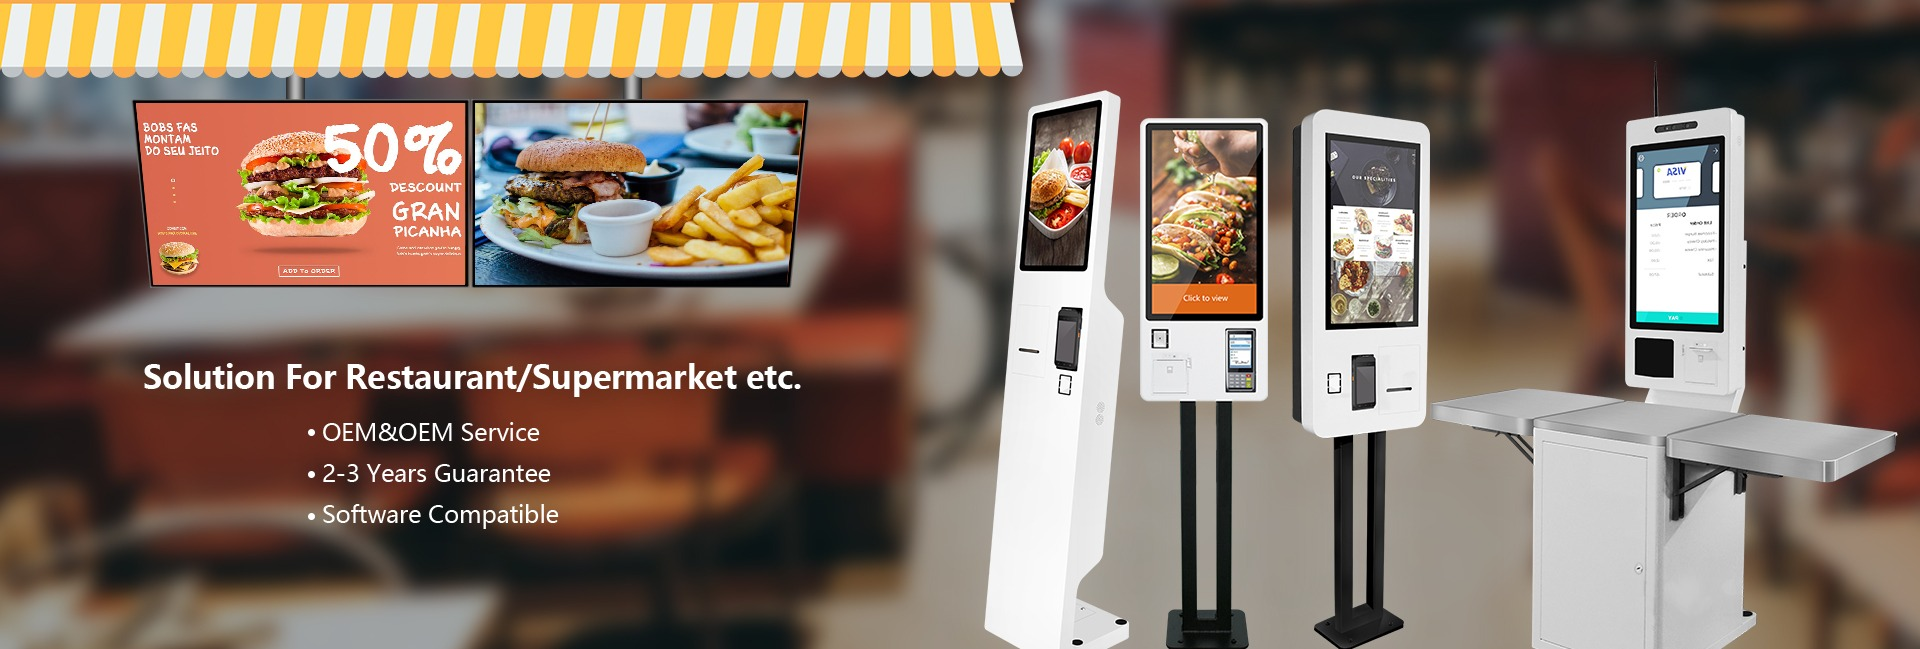 shopping cart pos finance software Digital Screens and self order kiosk